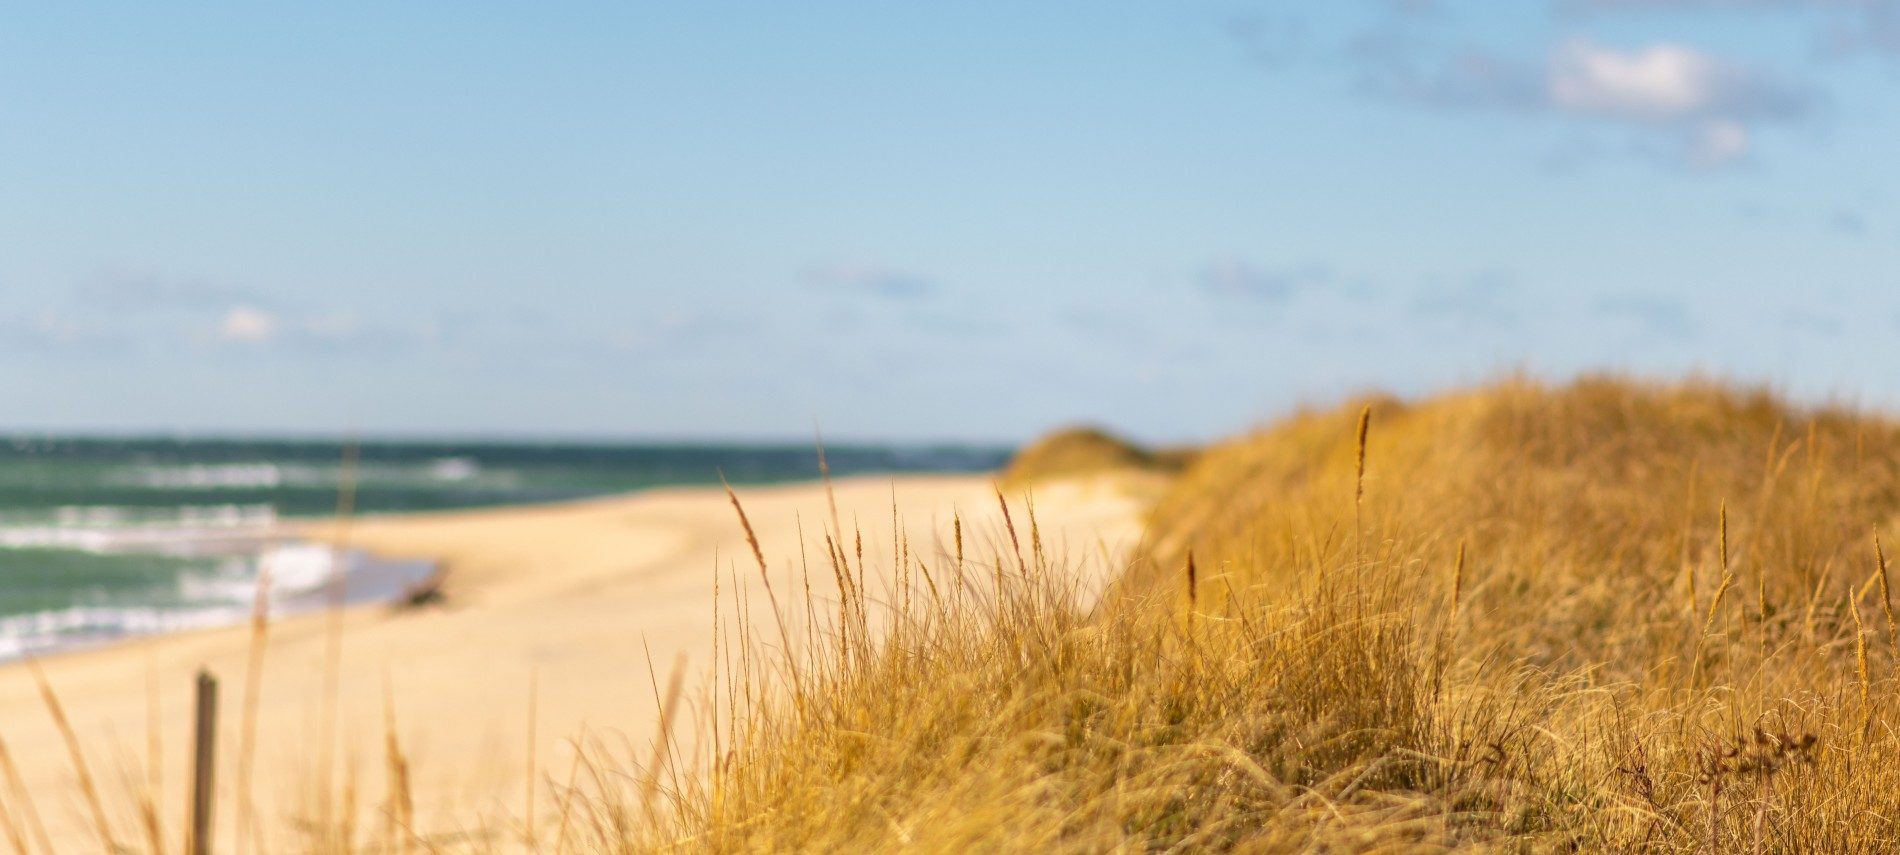 Dune with brown dune grass by expansive beach next to dark blue ocean